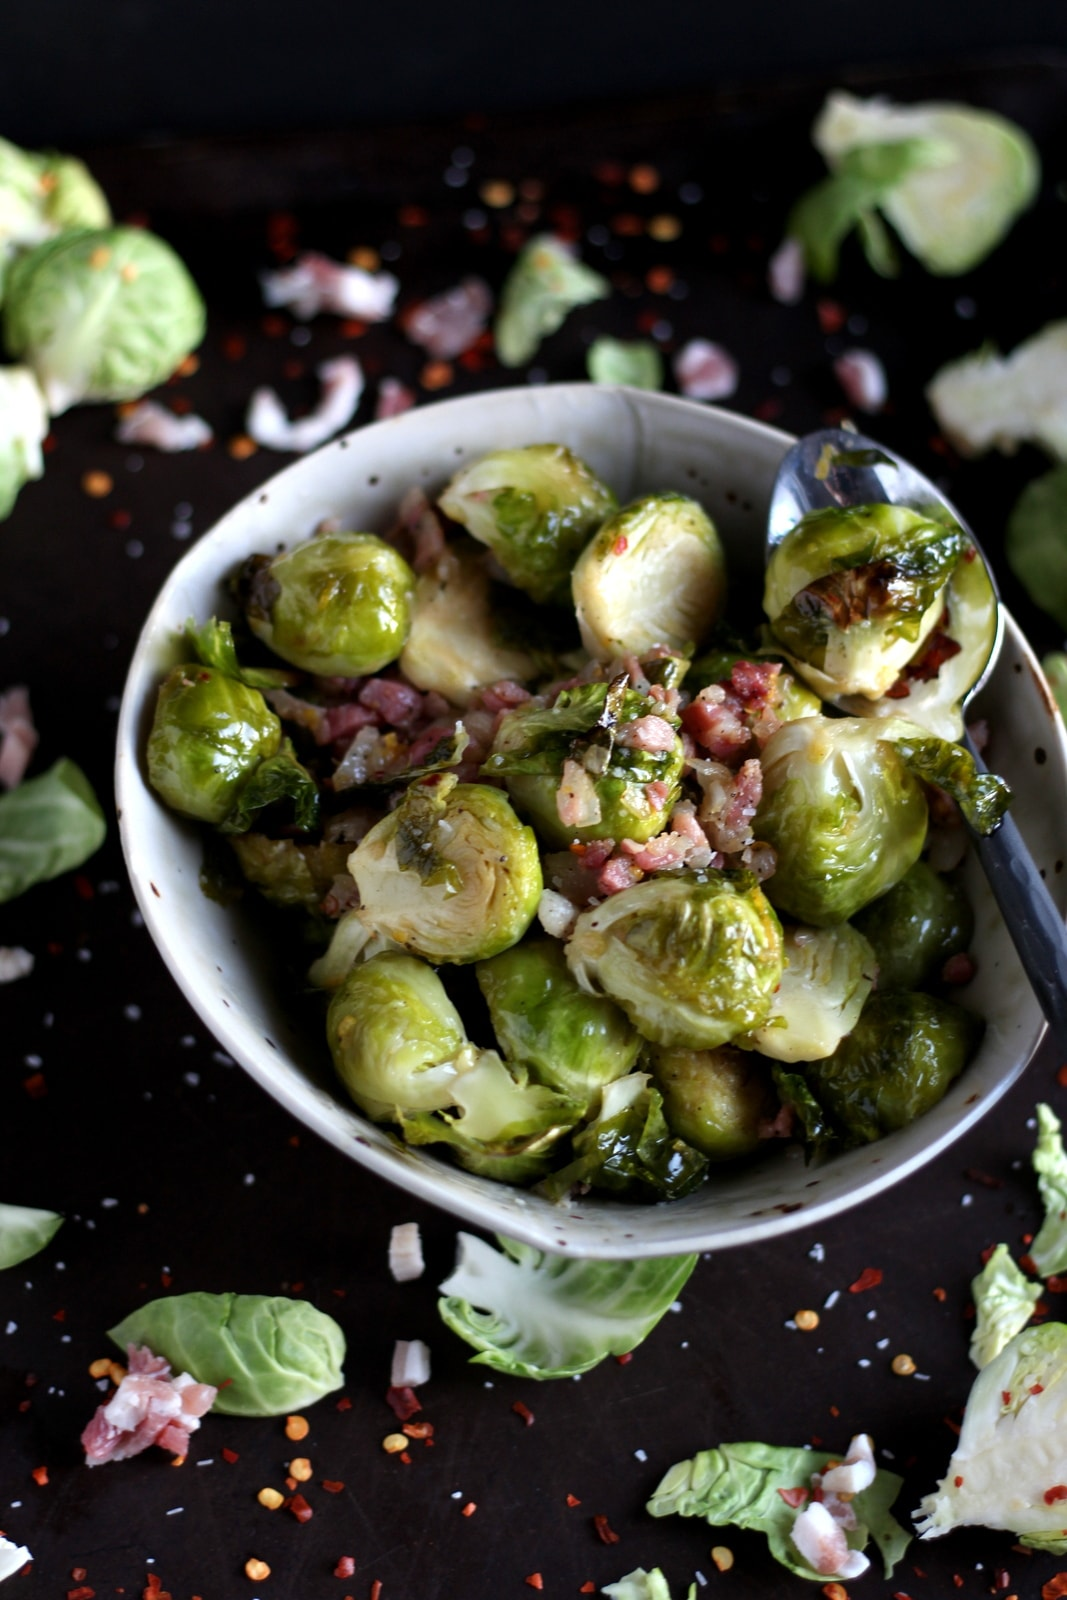 Roasted Brussel Sprouts + Pancetta and Red Pepper Flakes - savory side dish for Christmas or any meal! thewoodenskillet.com #christmasrecipe #foodphotography